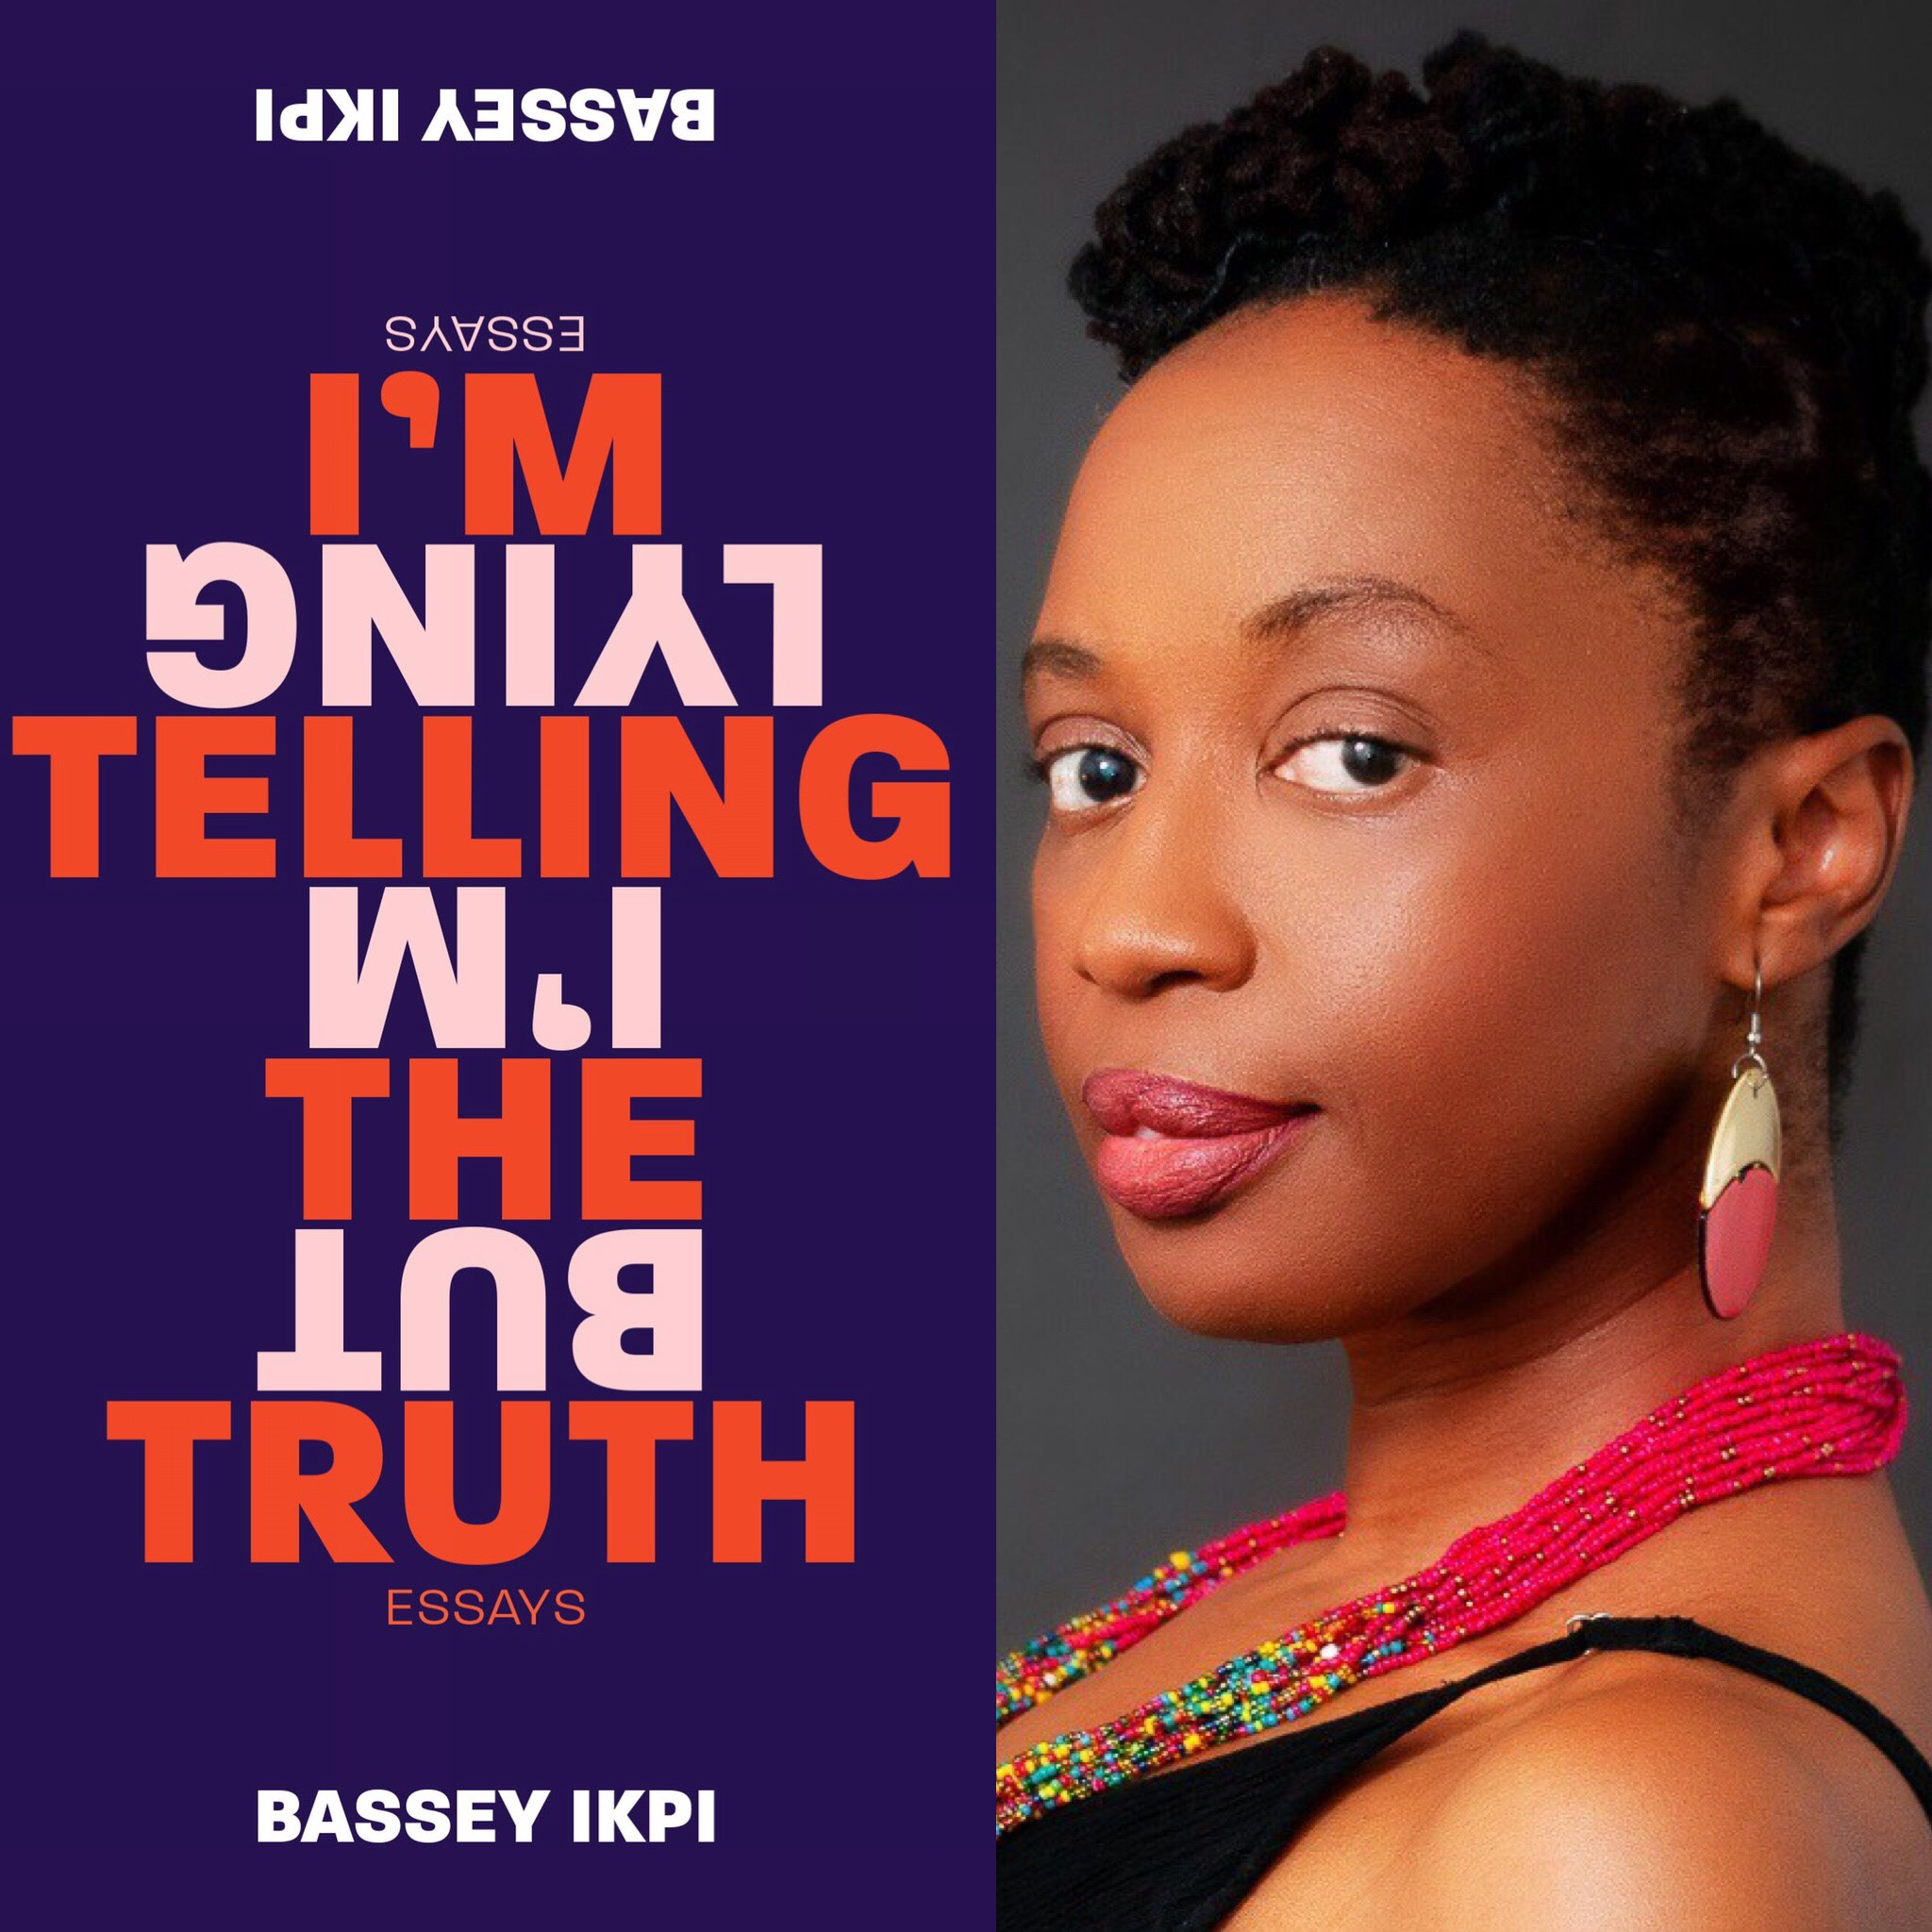 Bassey Ikpi - Author Photo Credit :Maxine L. Moore Book Cover Credit : Matthew McNerney/Polemic Design